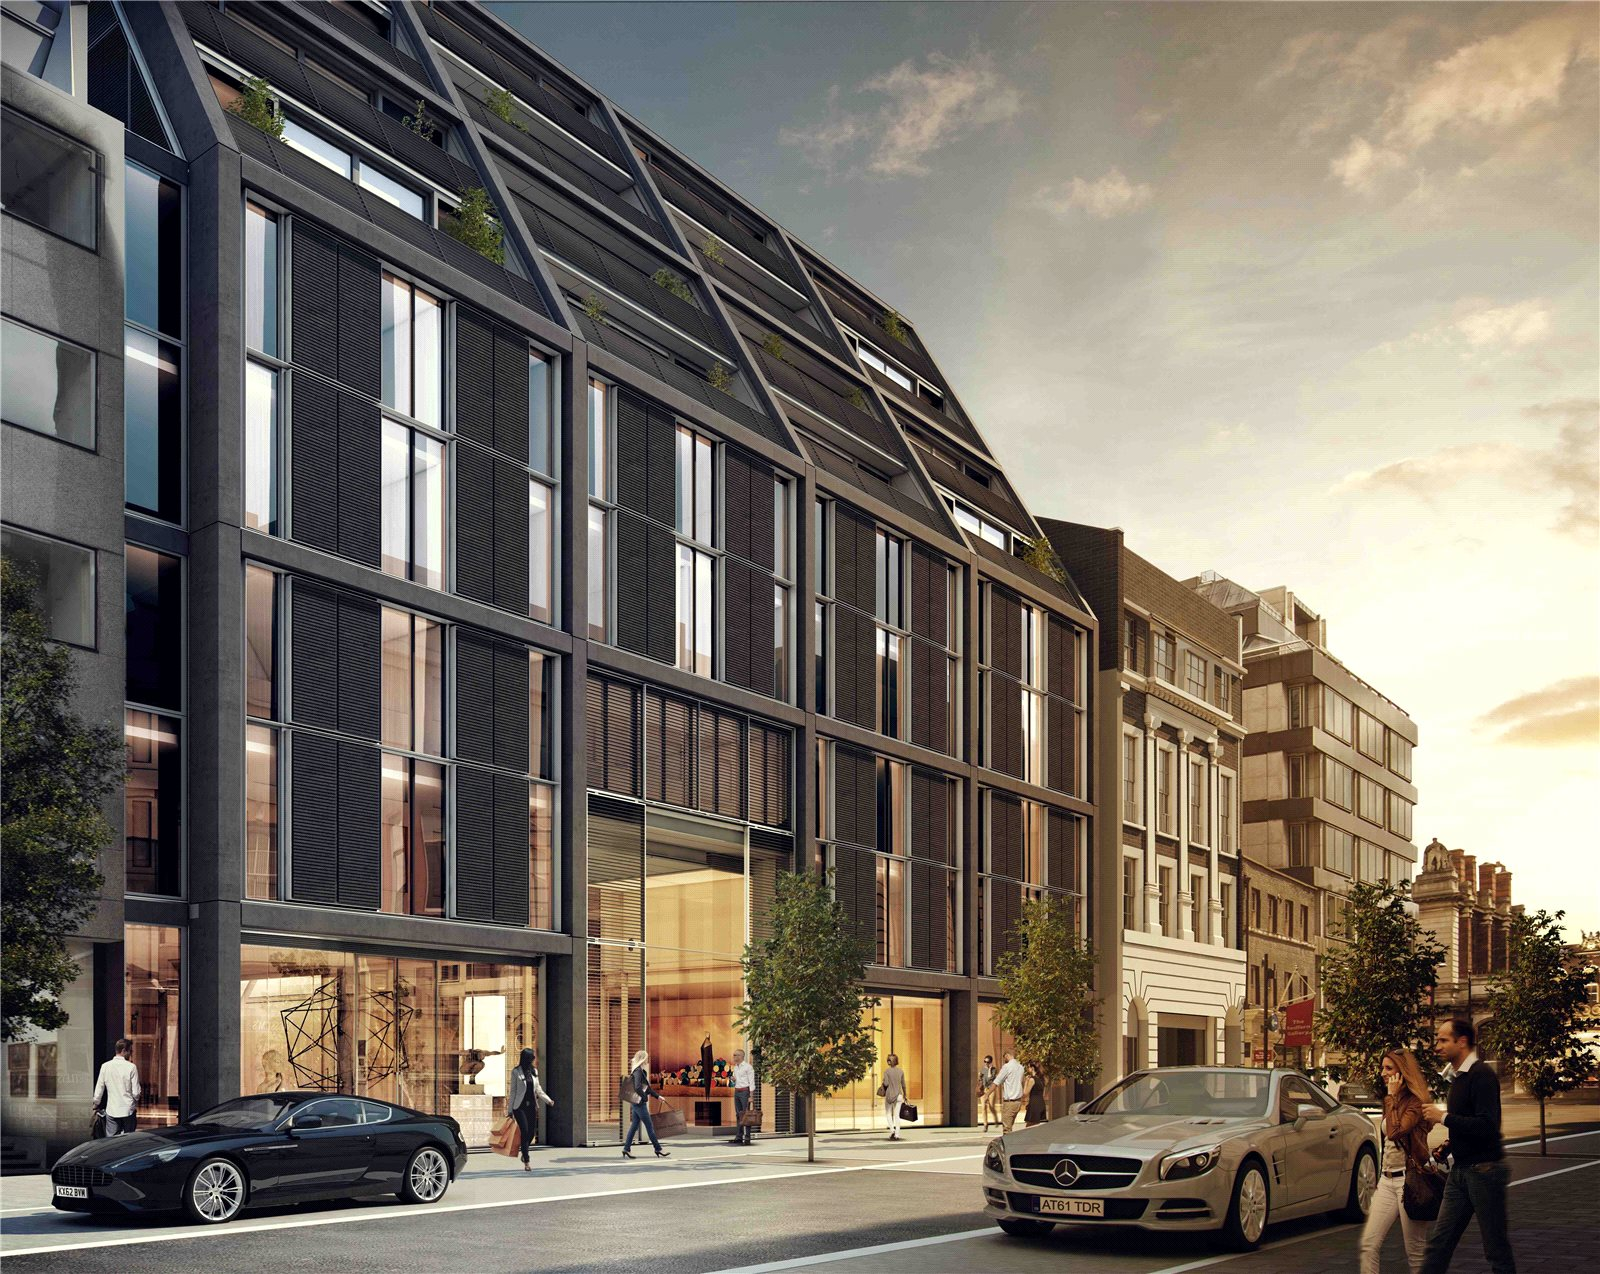 Apartments residences for sale at cork street mayfair london w1s - Additional Photo For Property Listing At Cork Street Mayfair London W1s Mayfair